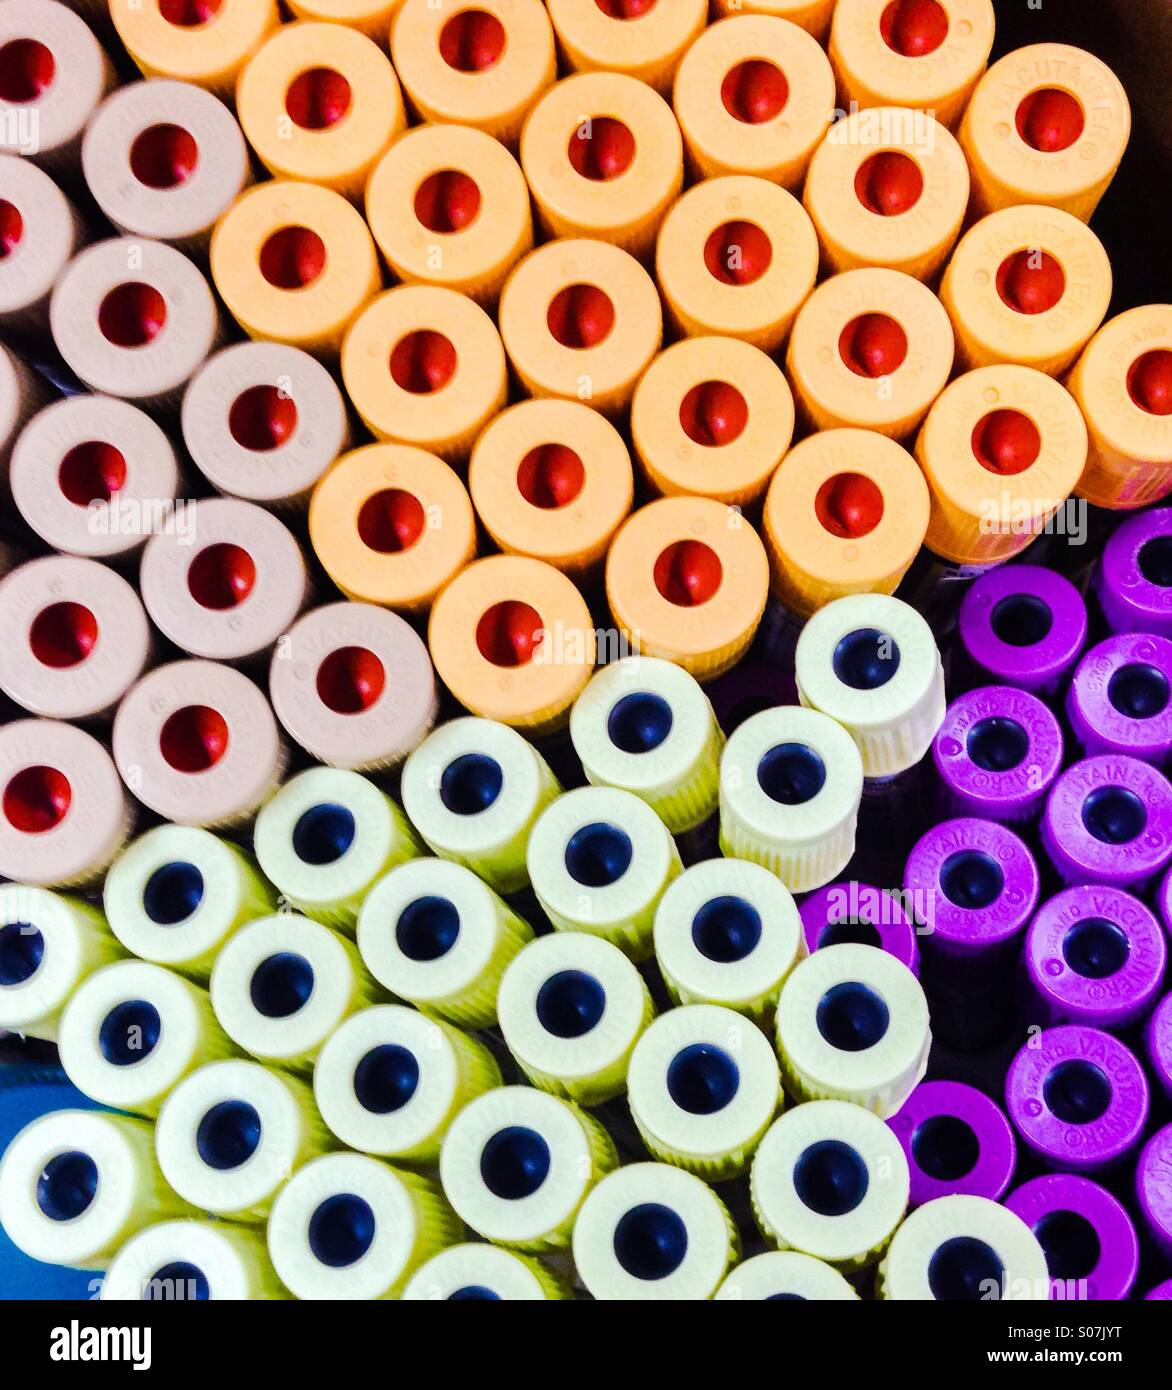 Aerial view of vacutainers, used for blood sample storage. - Stock Image